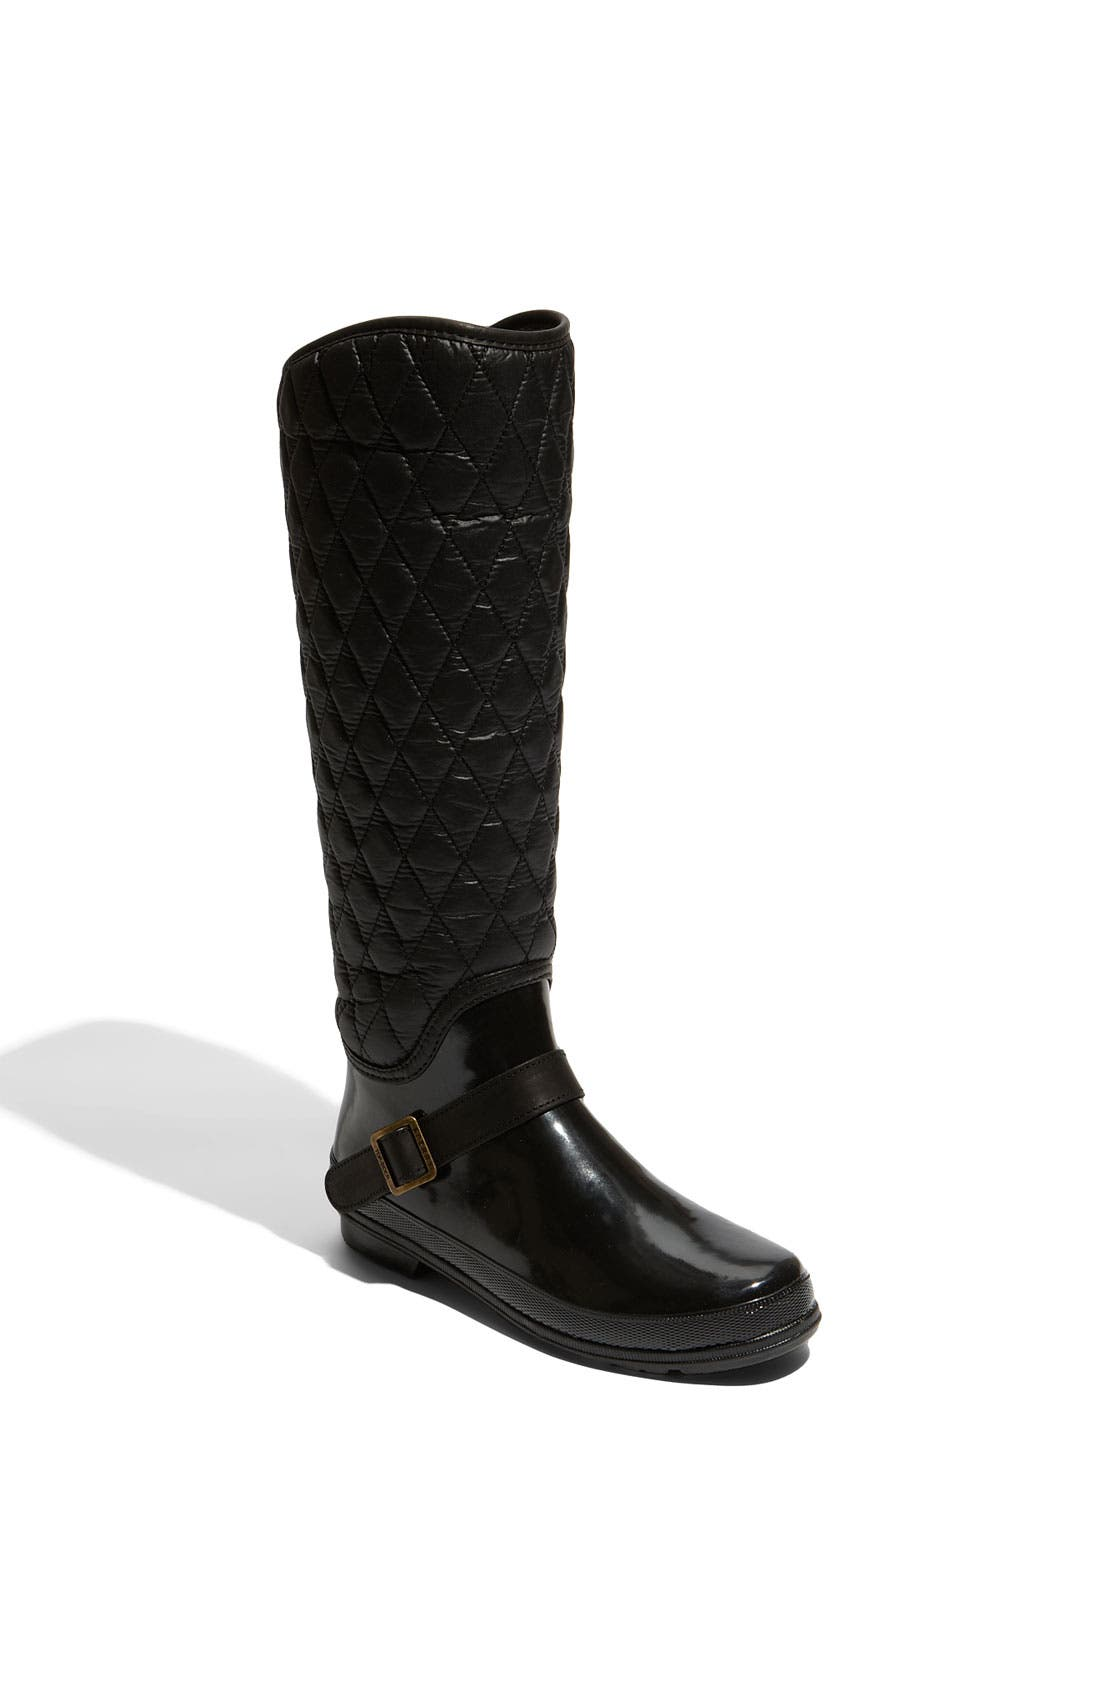 Alternate Image 1 Selected - Sperry Top-Sider® 'Hingham' Rain Boot (Women)